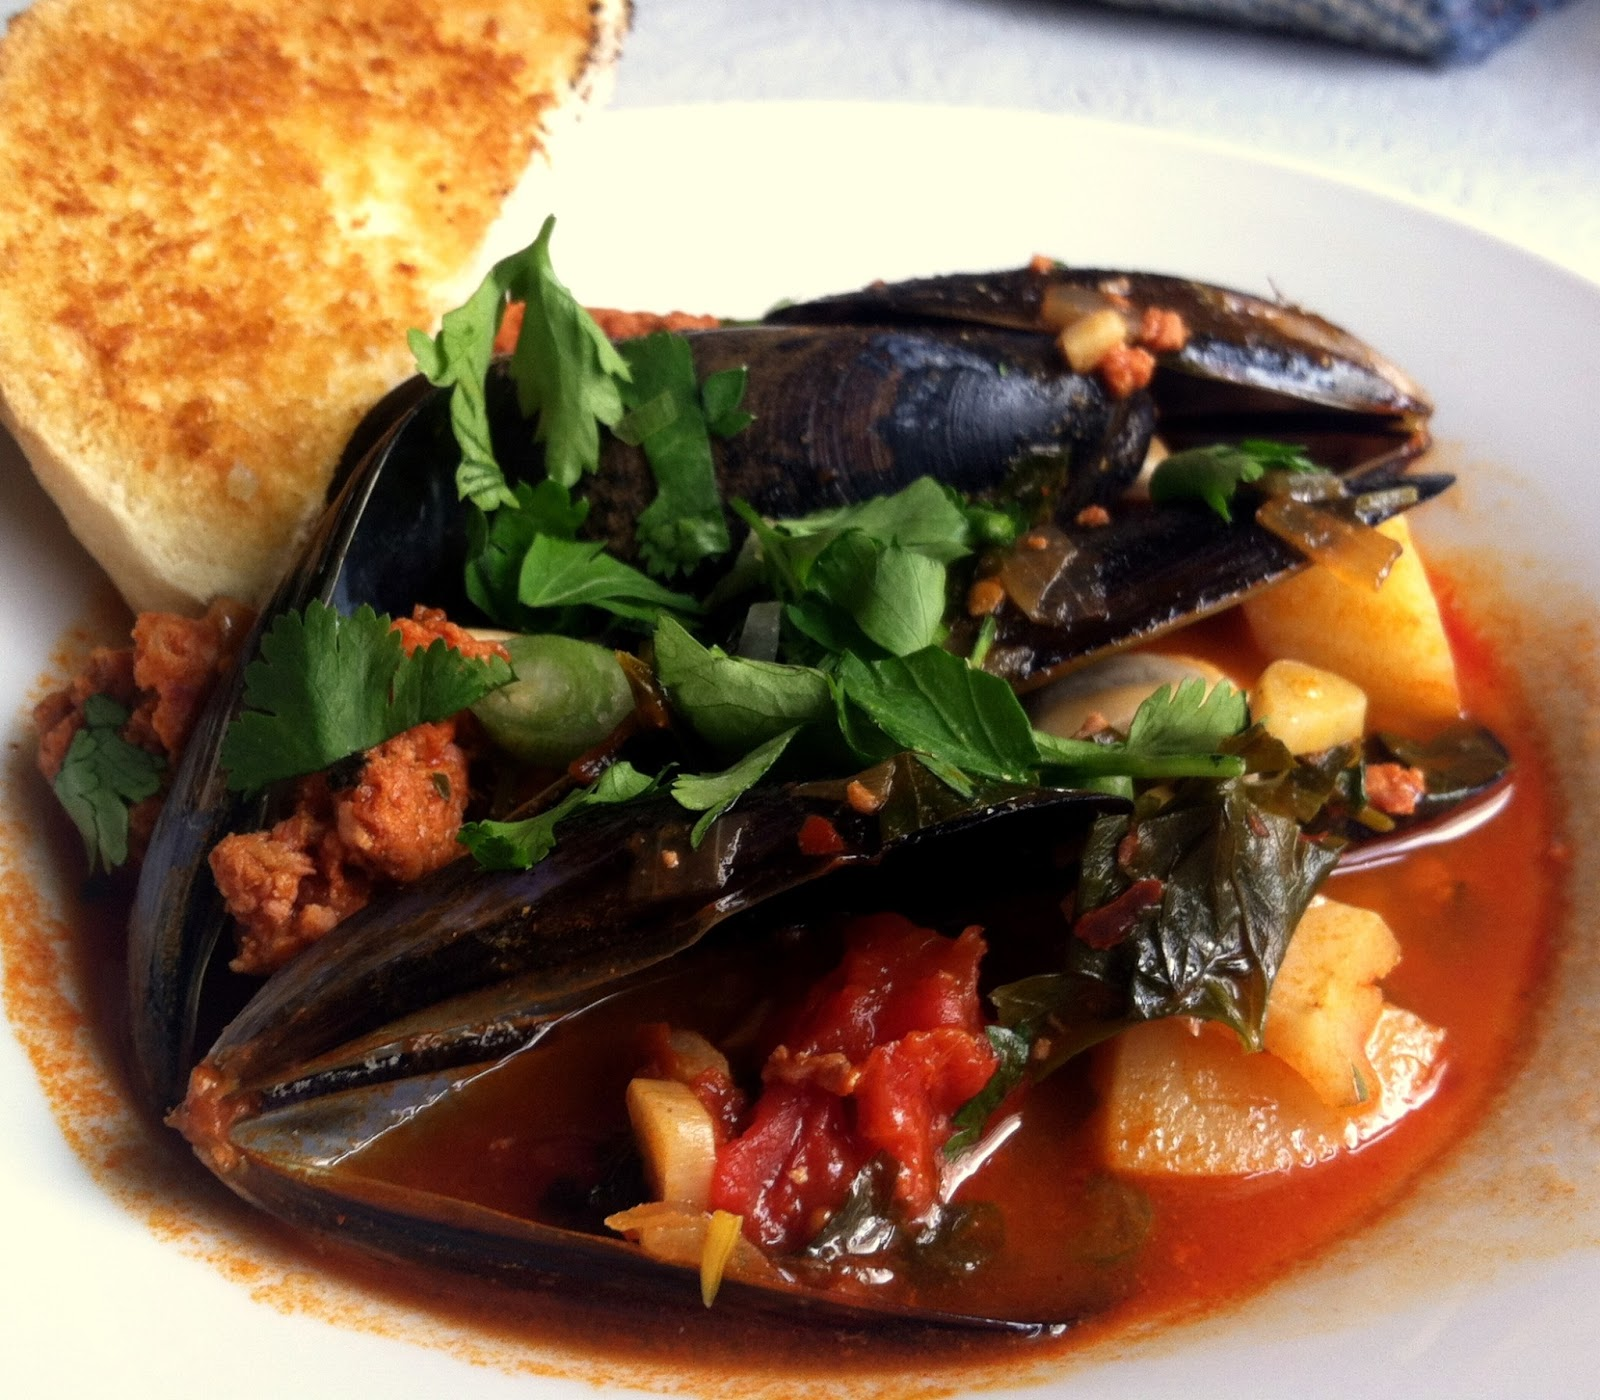 ... of Little Pleasures: Mussels with Chorizo, Tomato, and Potato Stew